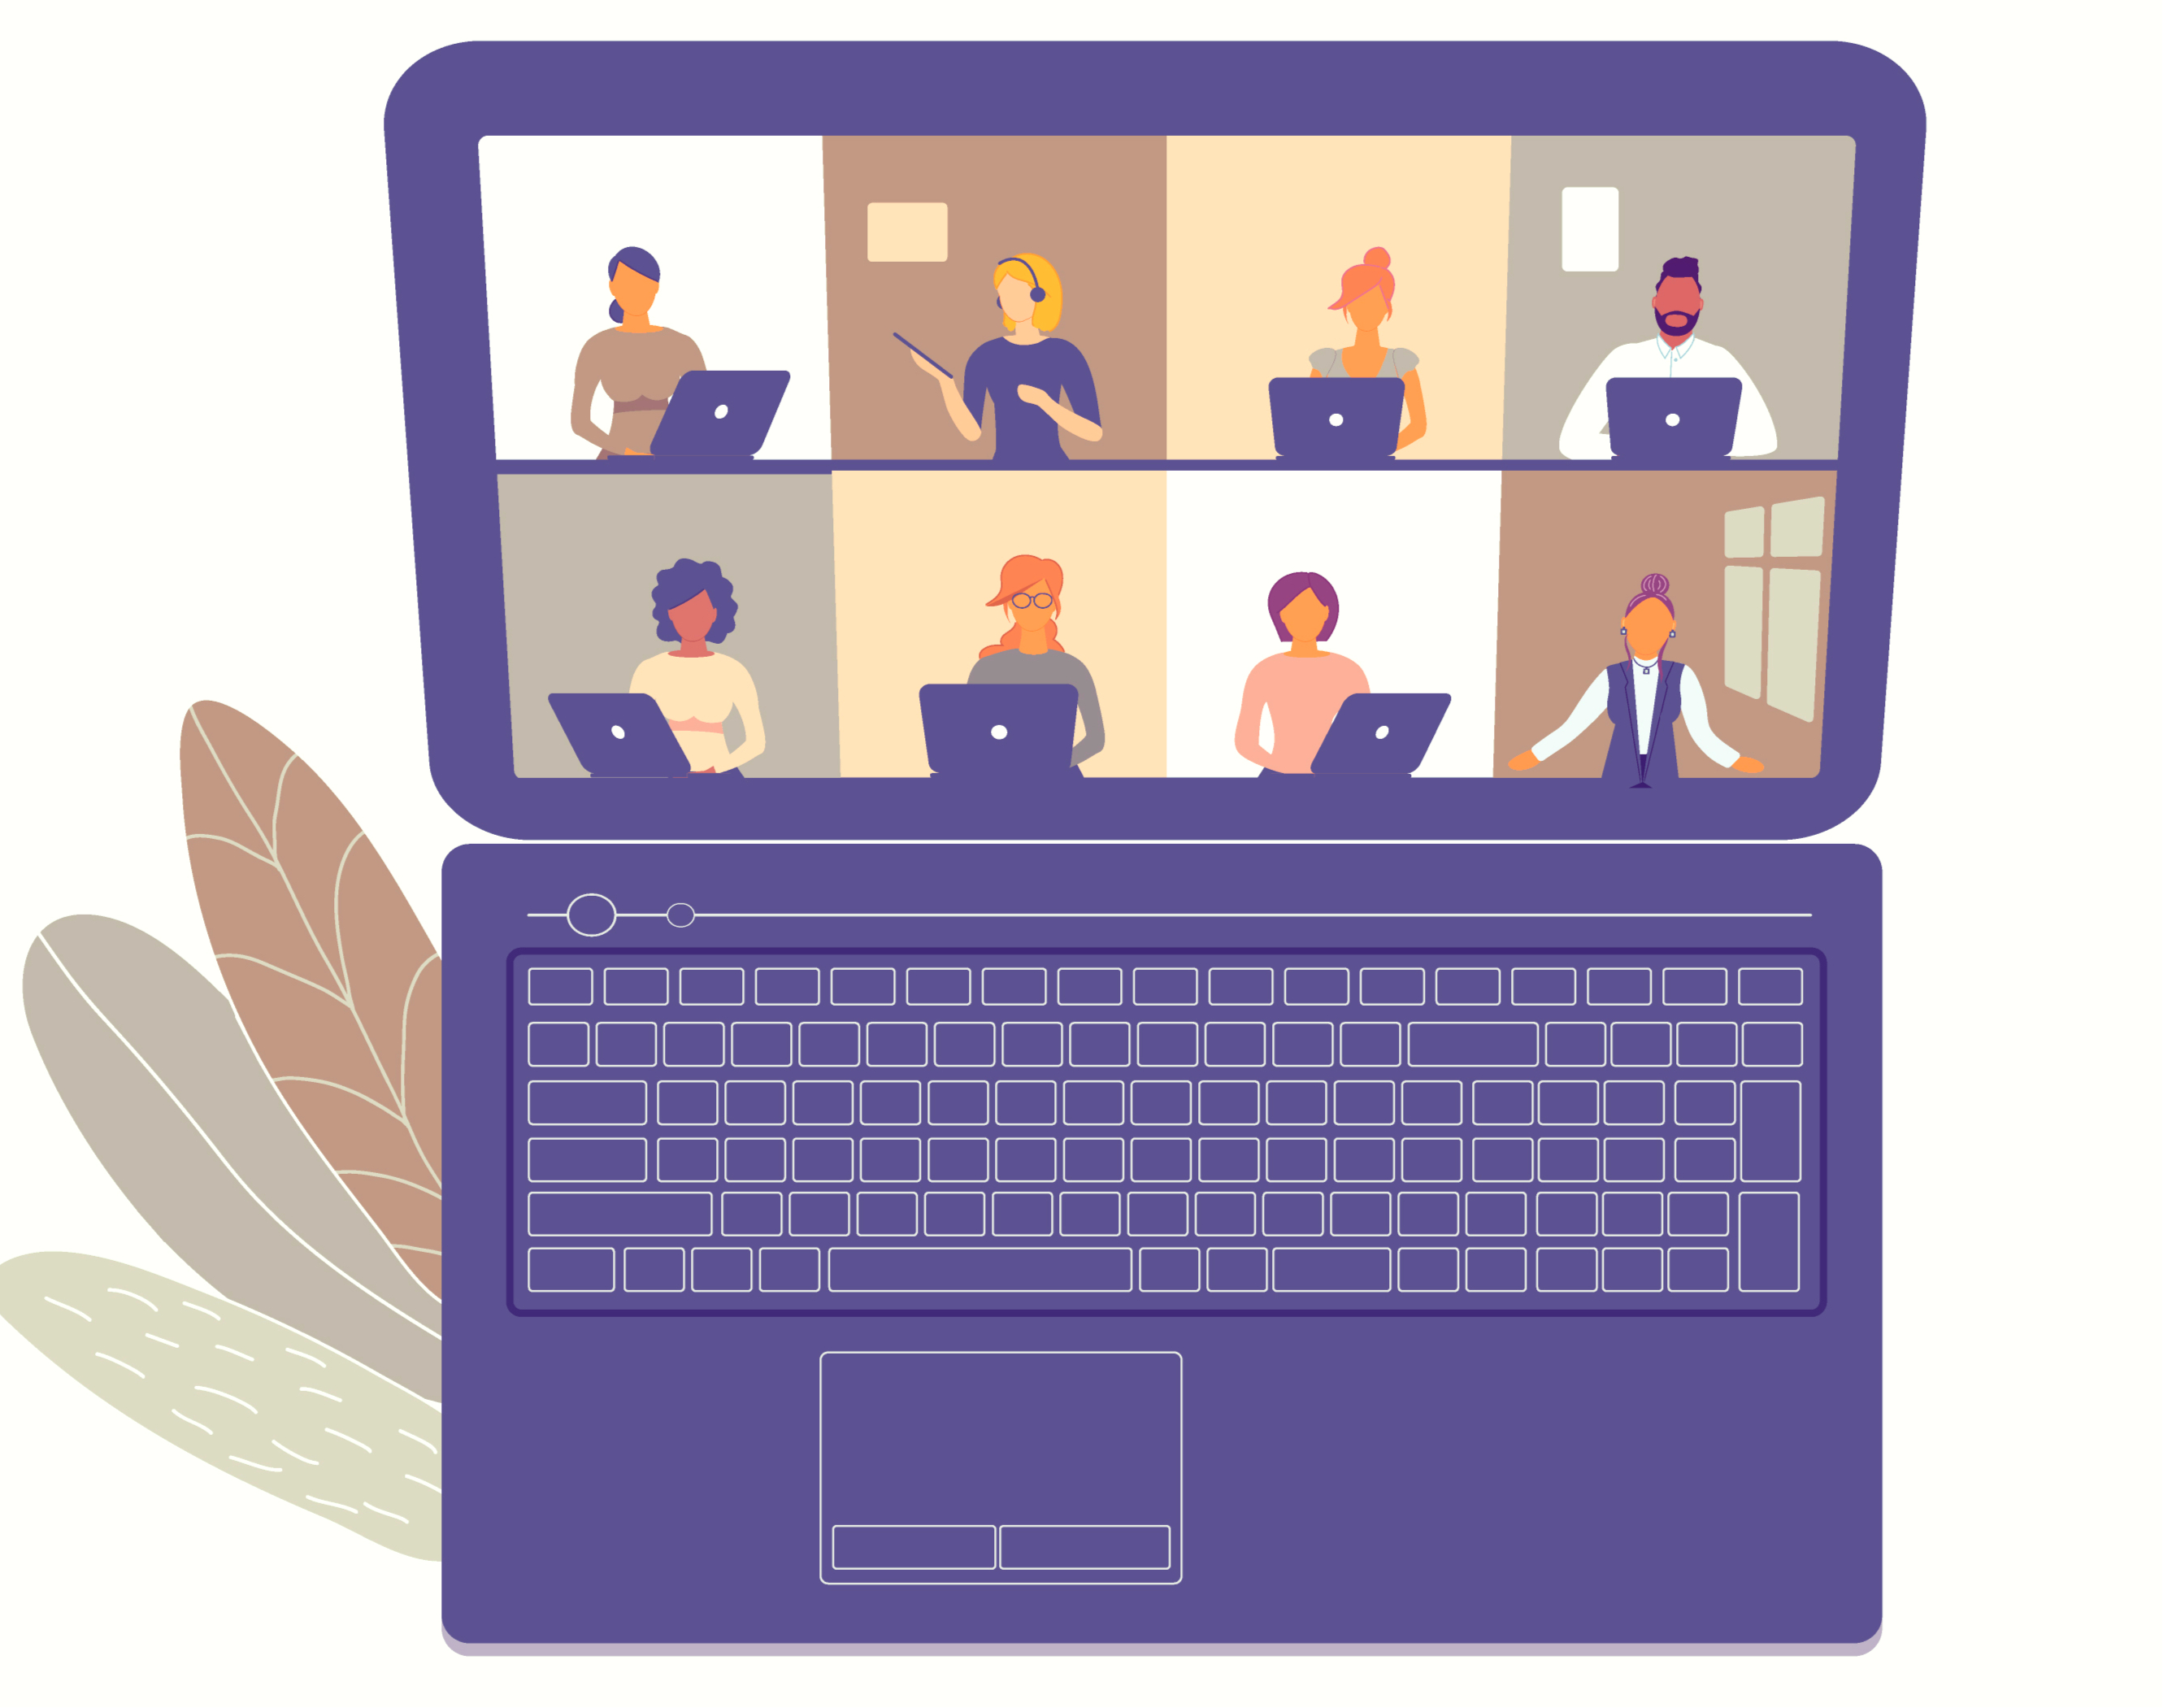 computer image with lots of people in a virtual meeting